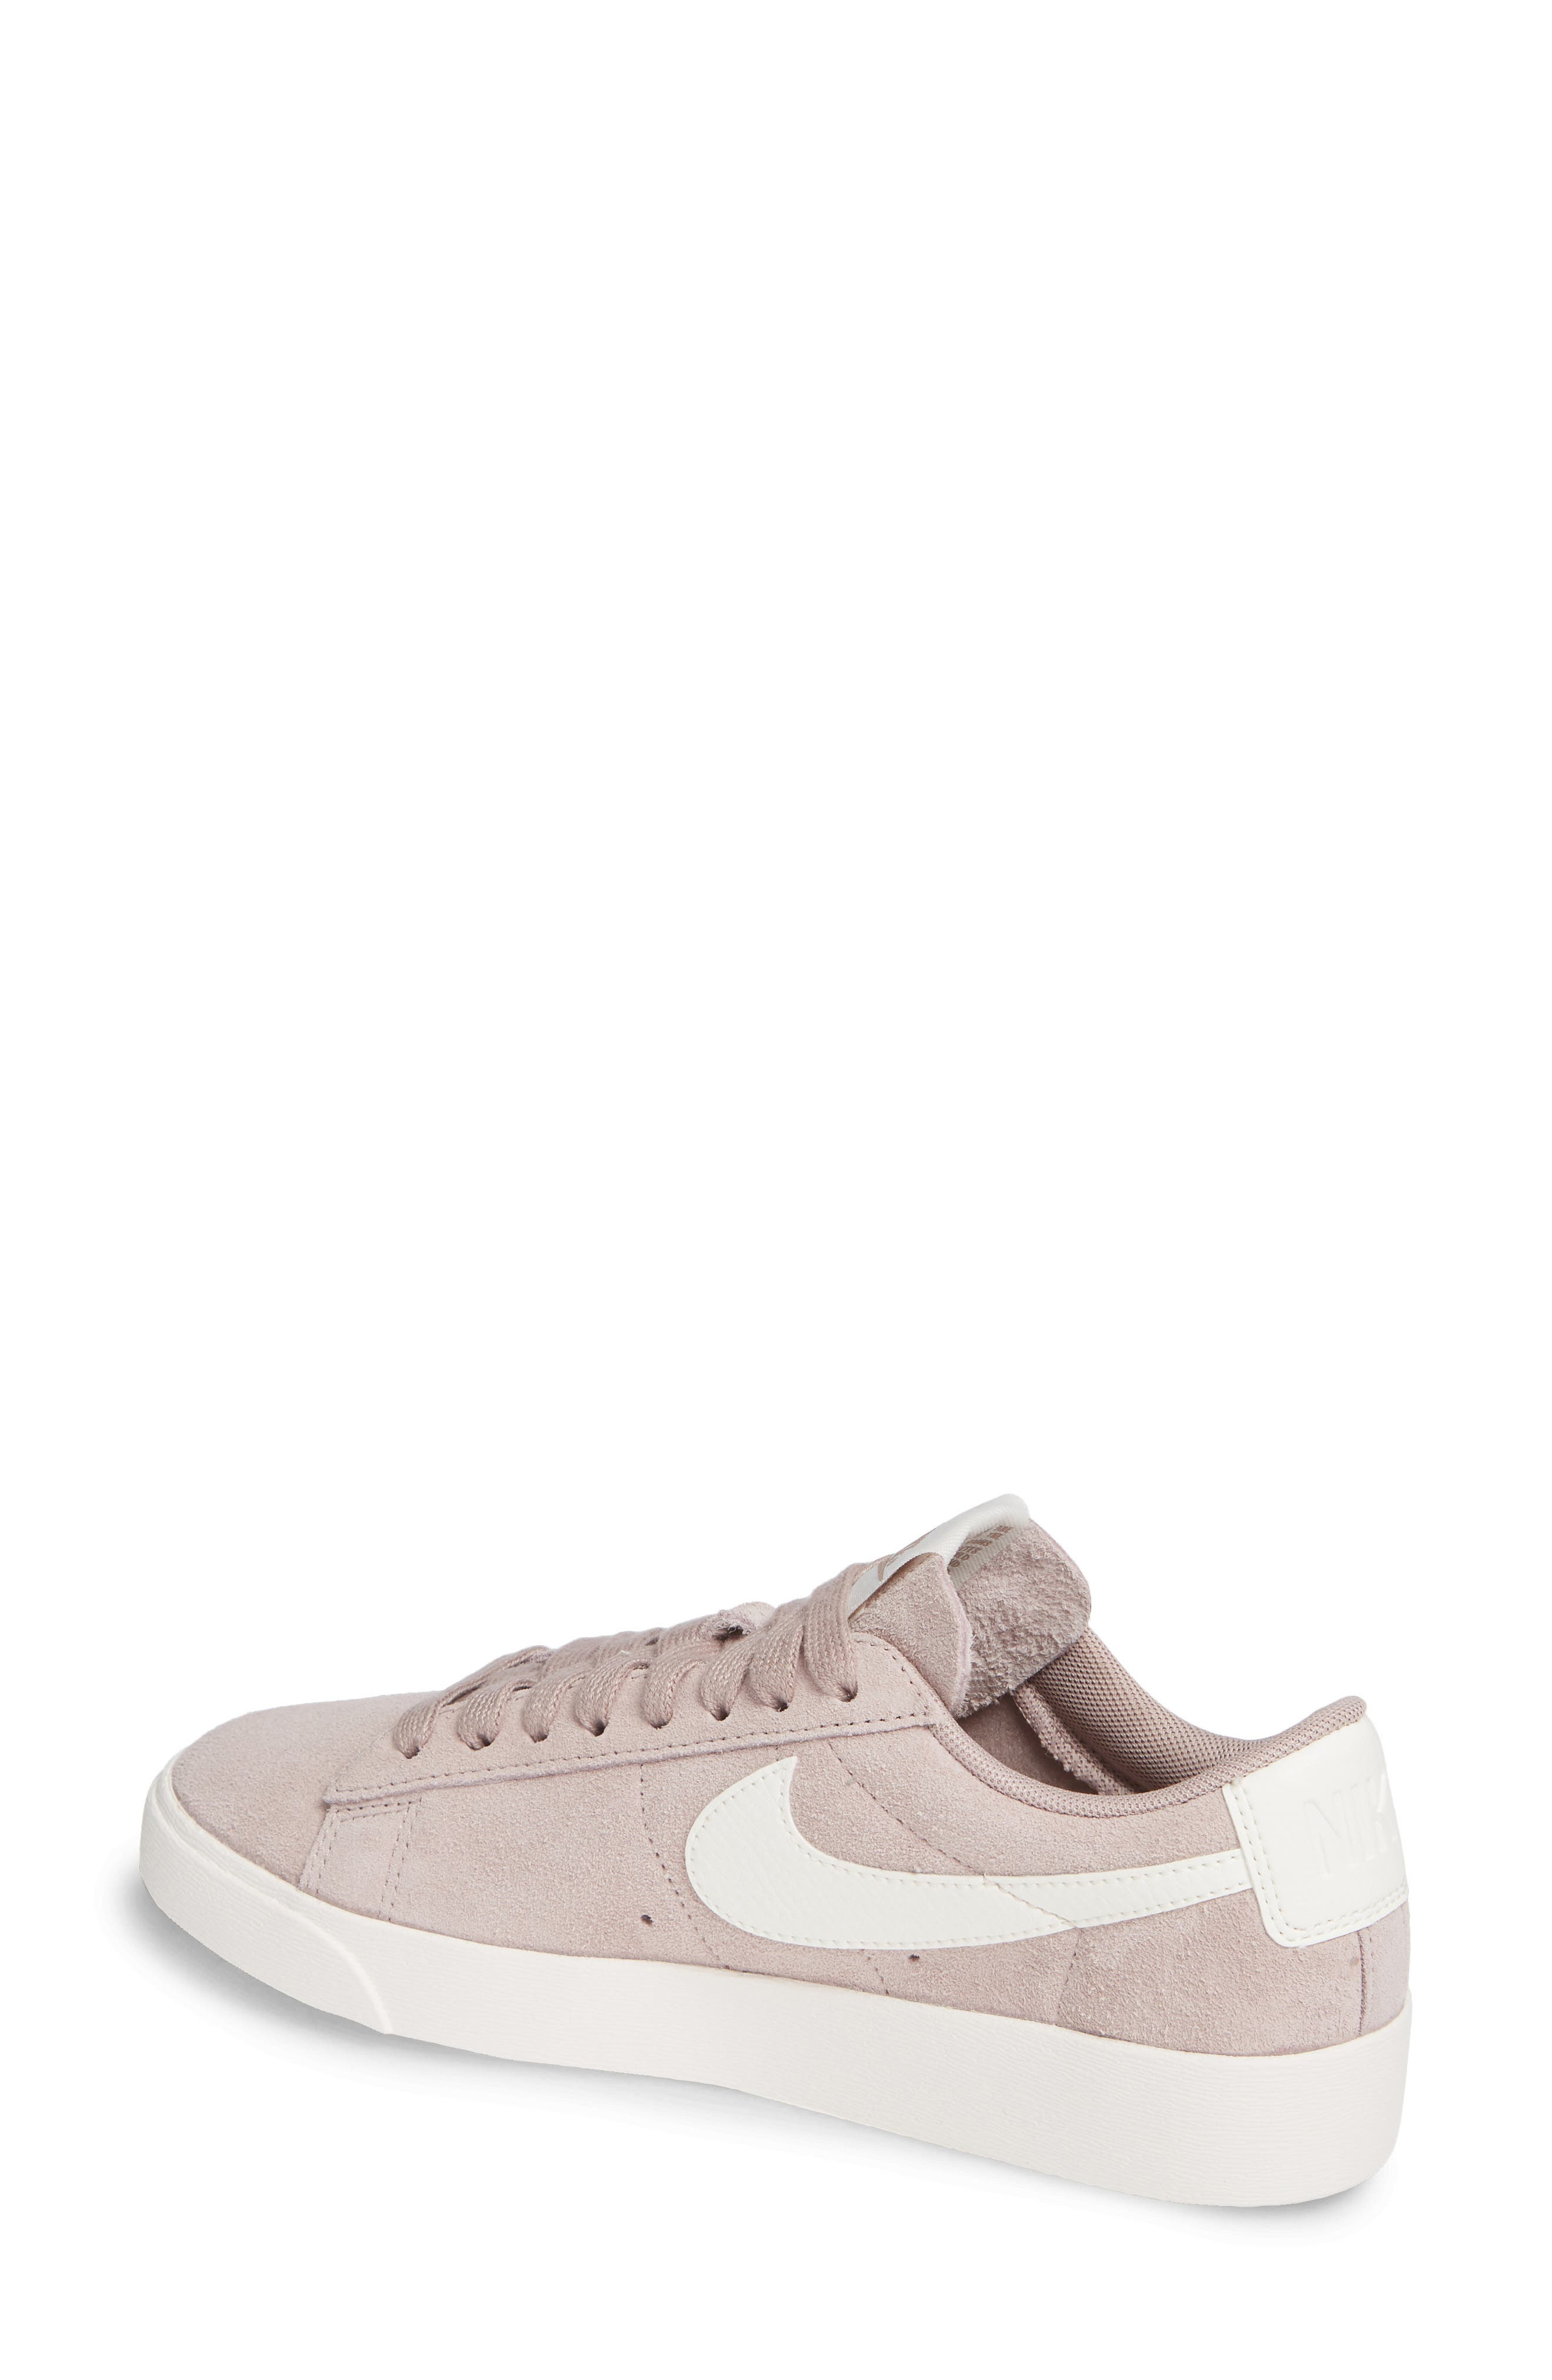 Blazer Low Sneaker,                             Alternate thumbnail 2, color,                             Diffused Taupe/ Sail